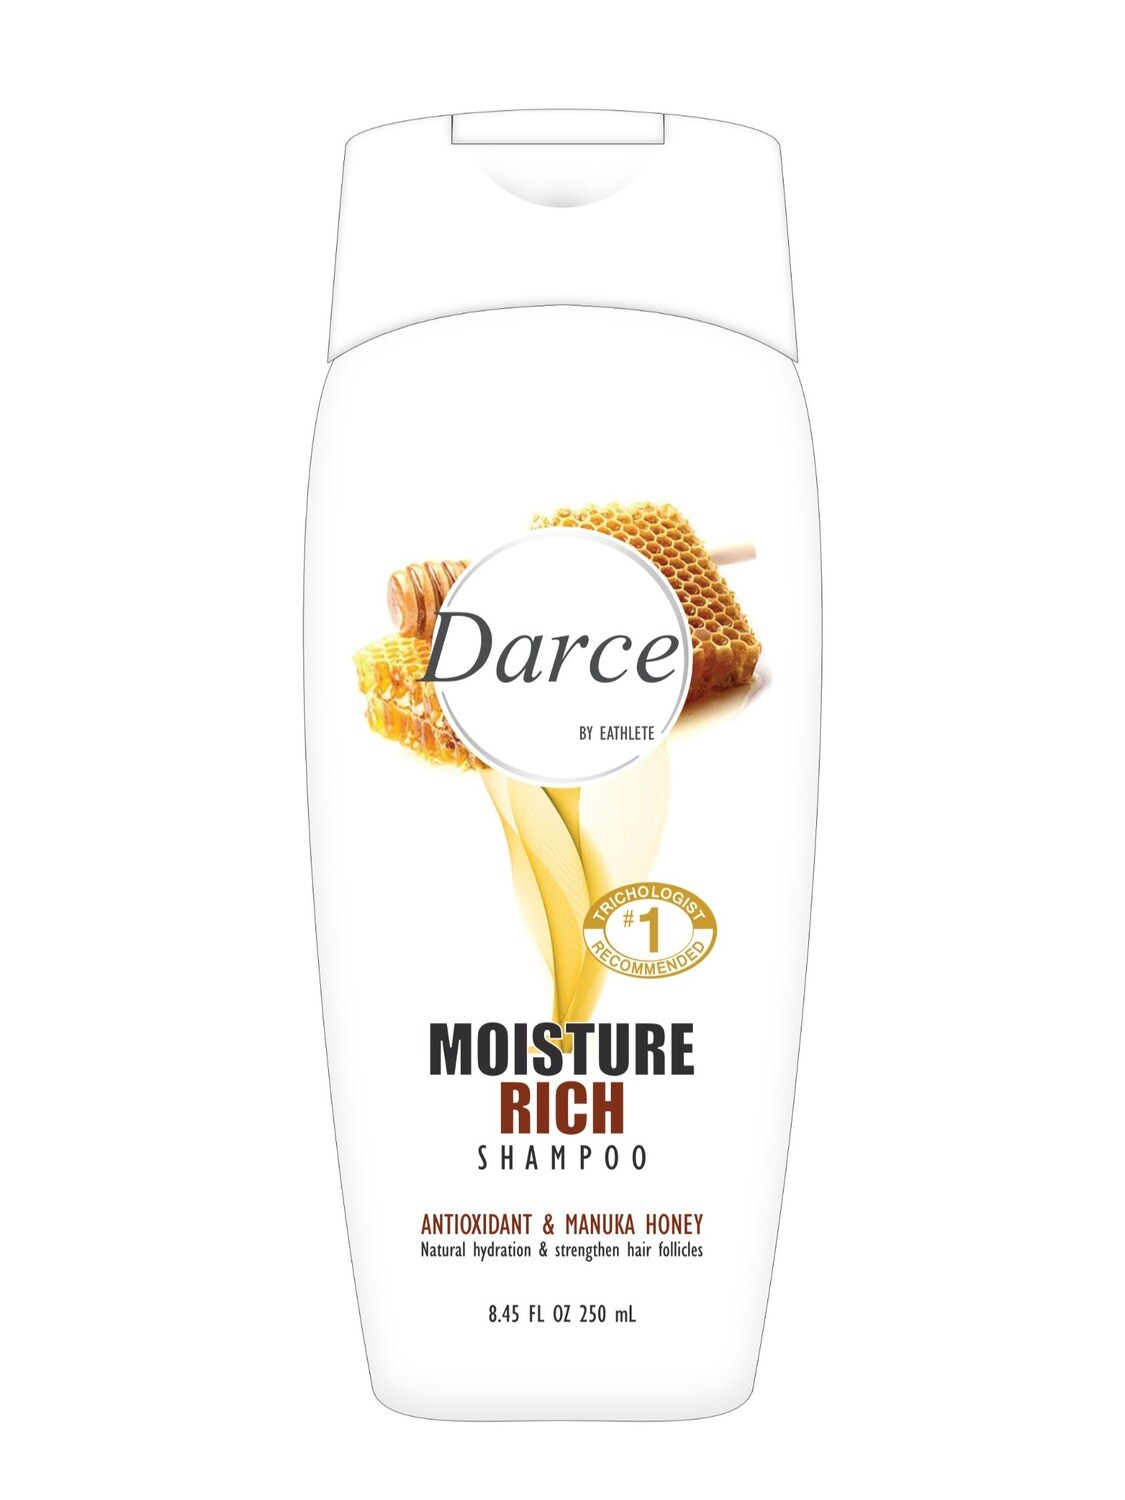 MOISTURE RICH SHAMPOO 250ml